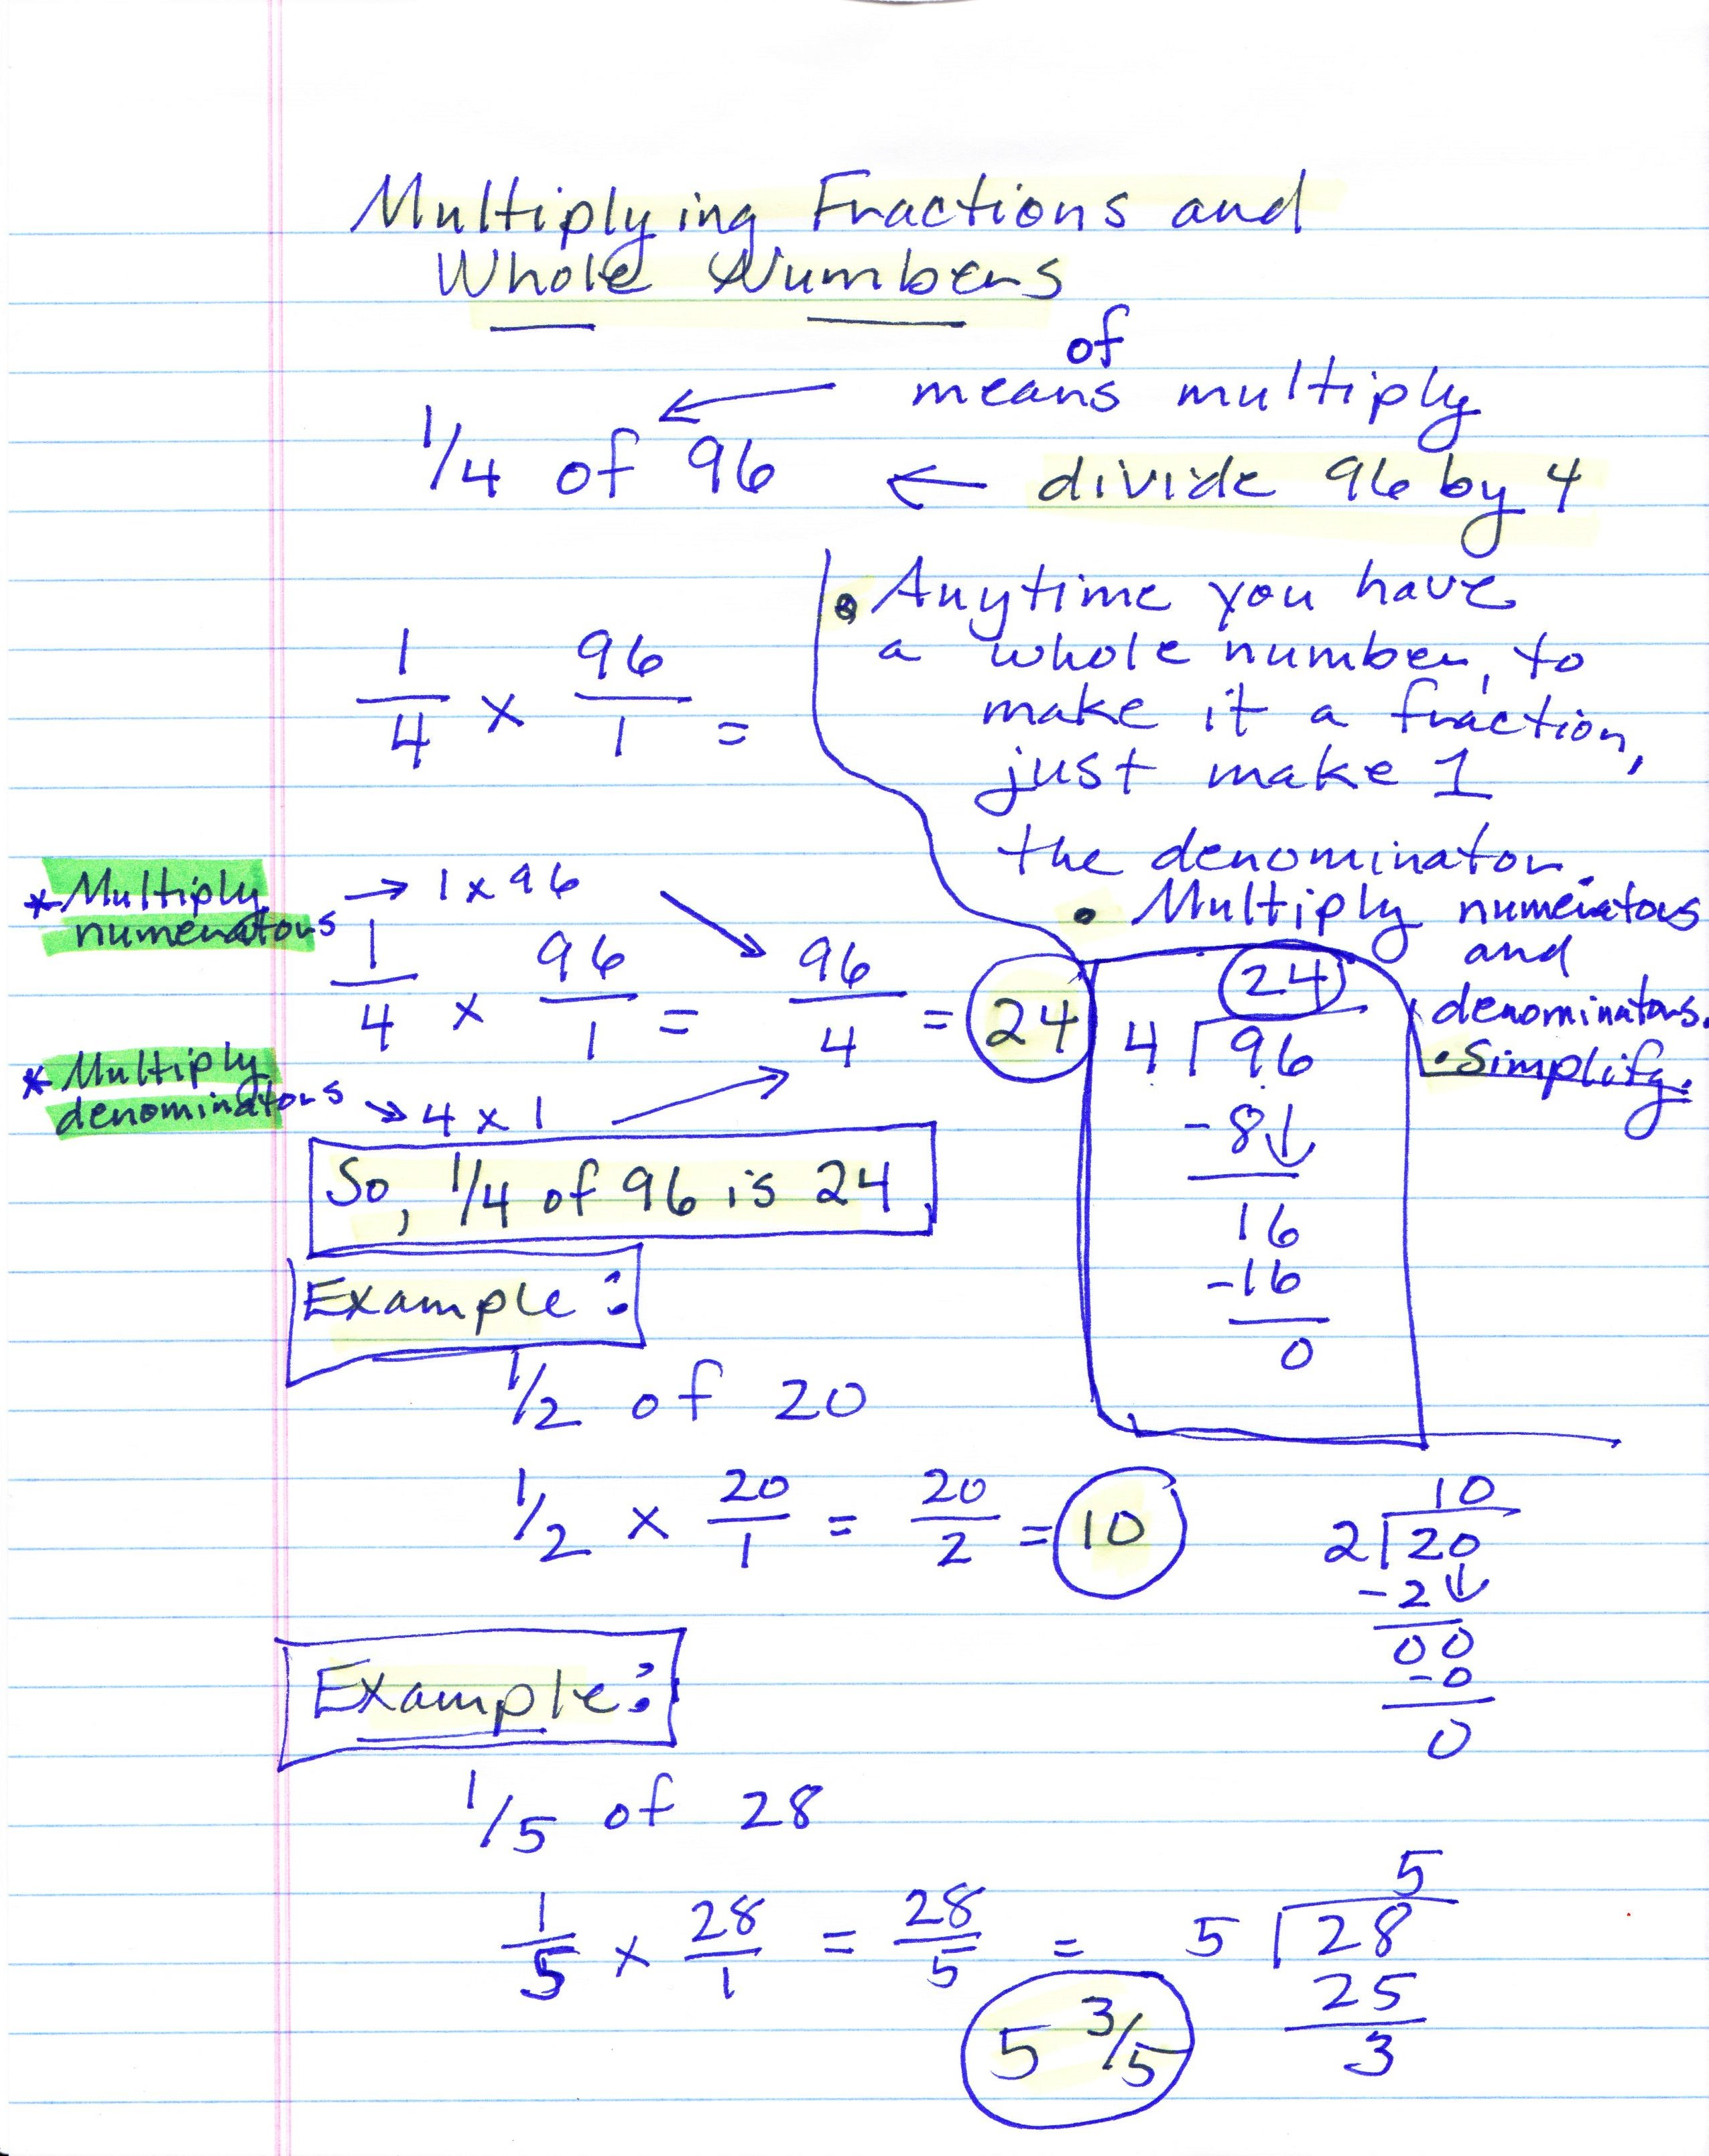 homework help multiplying fractions More examples of multiplying fractions are explained including multiplying by  mixed numbers.